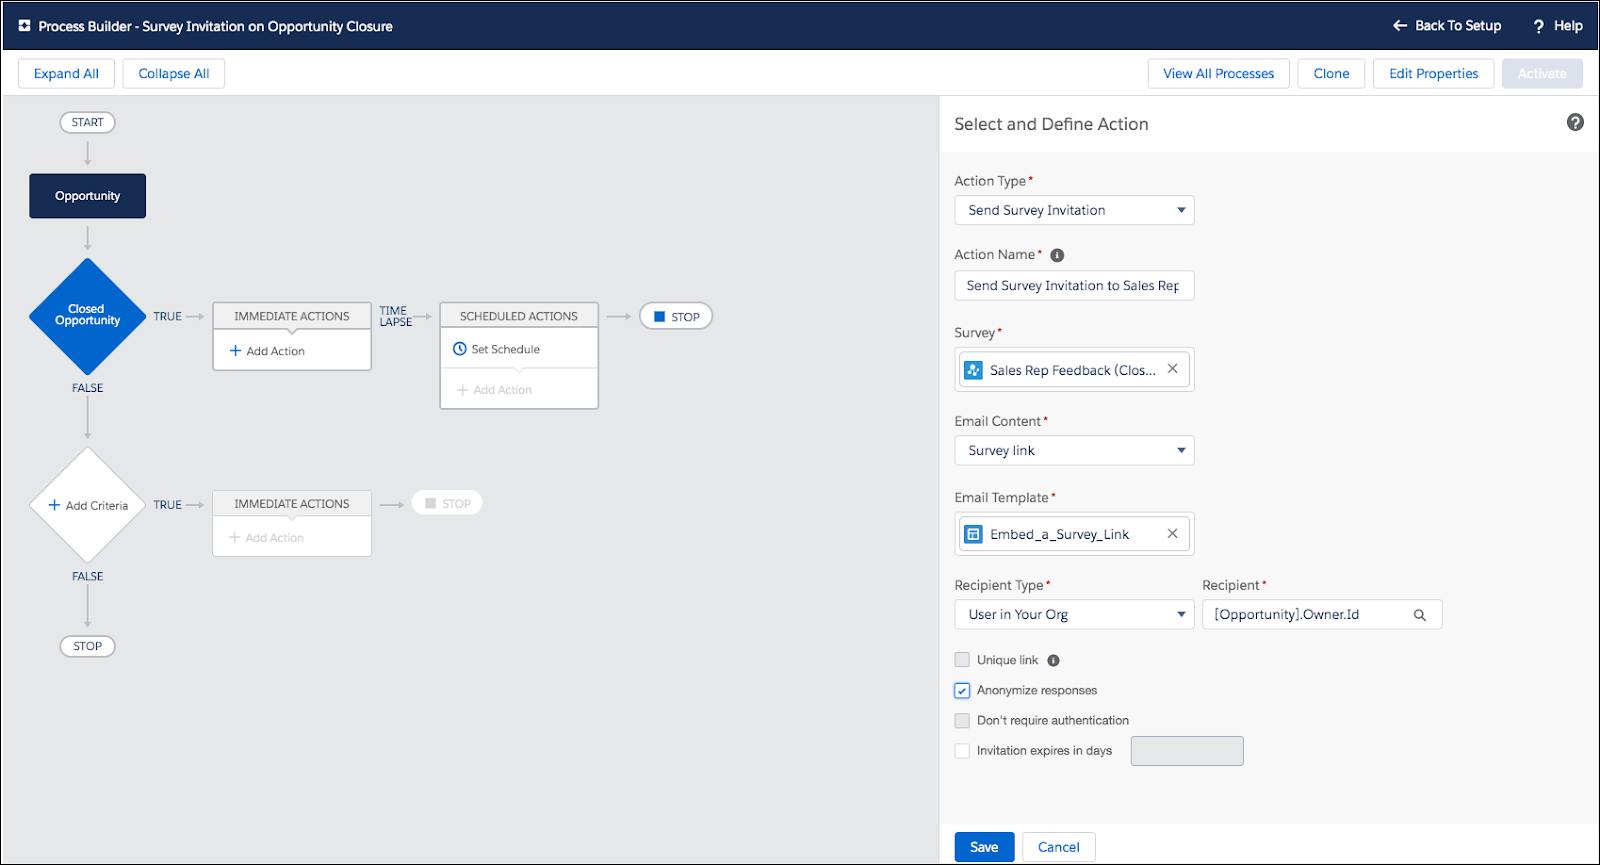 Process Builder with the Select and Define Action step open.